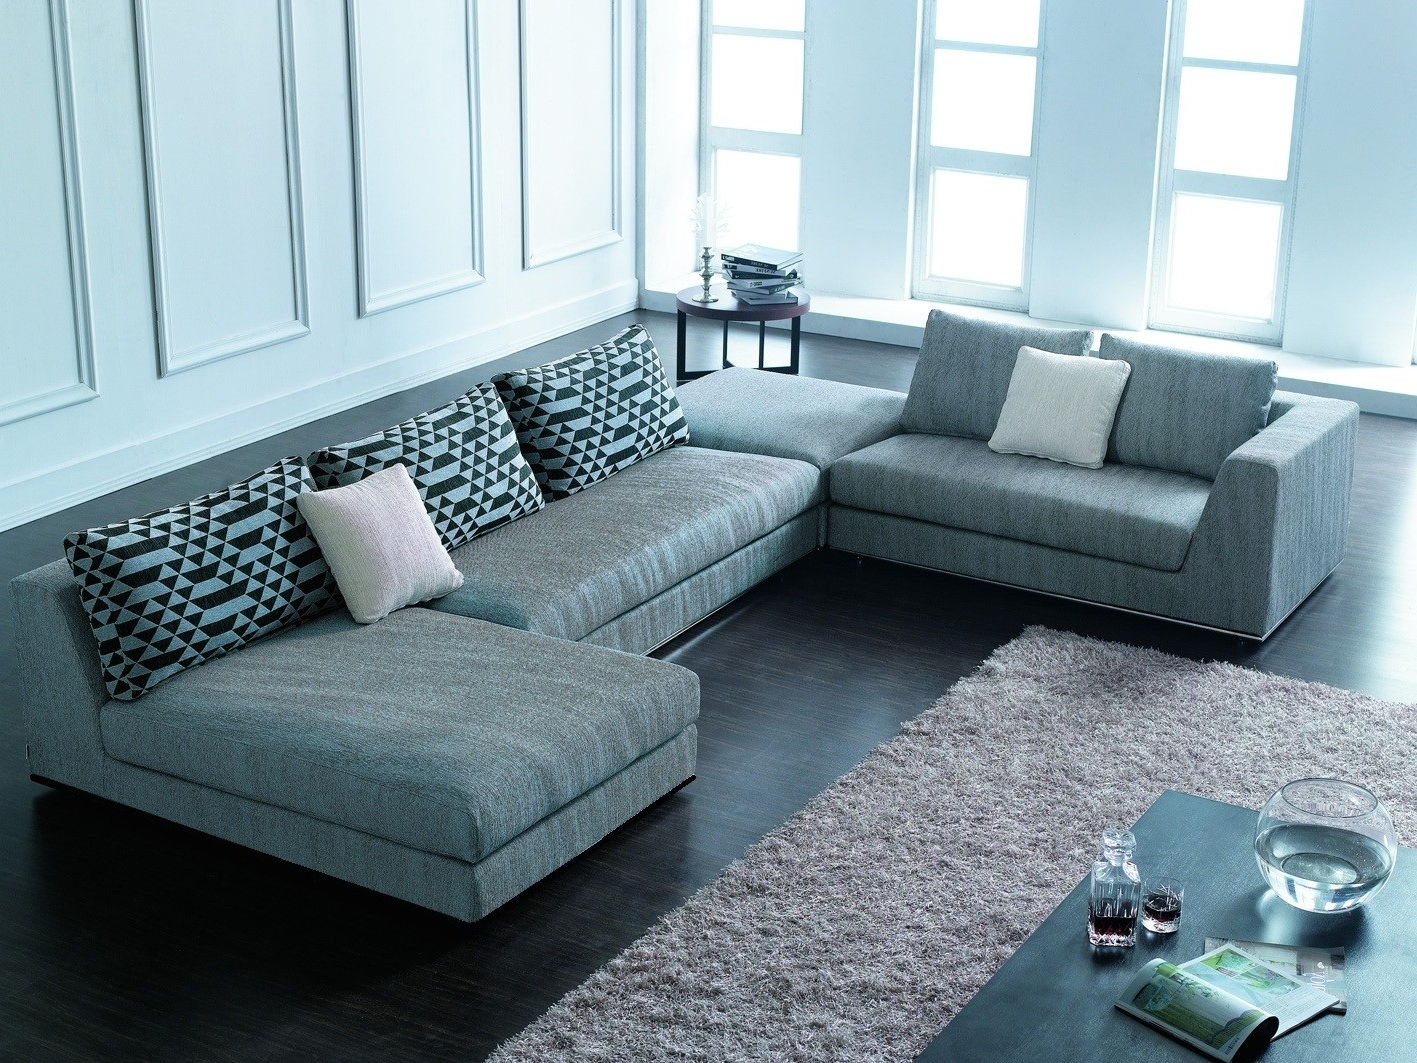 Most Comfortable Sectional Couches — Cabinets, Beds, Sofas And Throughout Most Recent Modern Sectional Sofas (View 11 of 15)